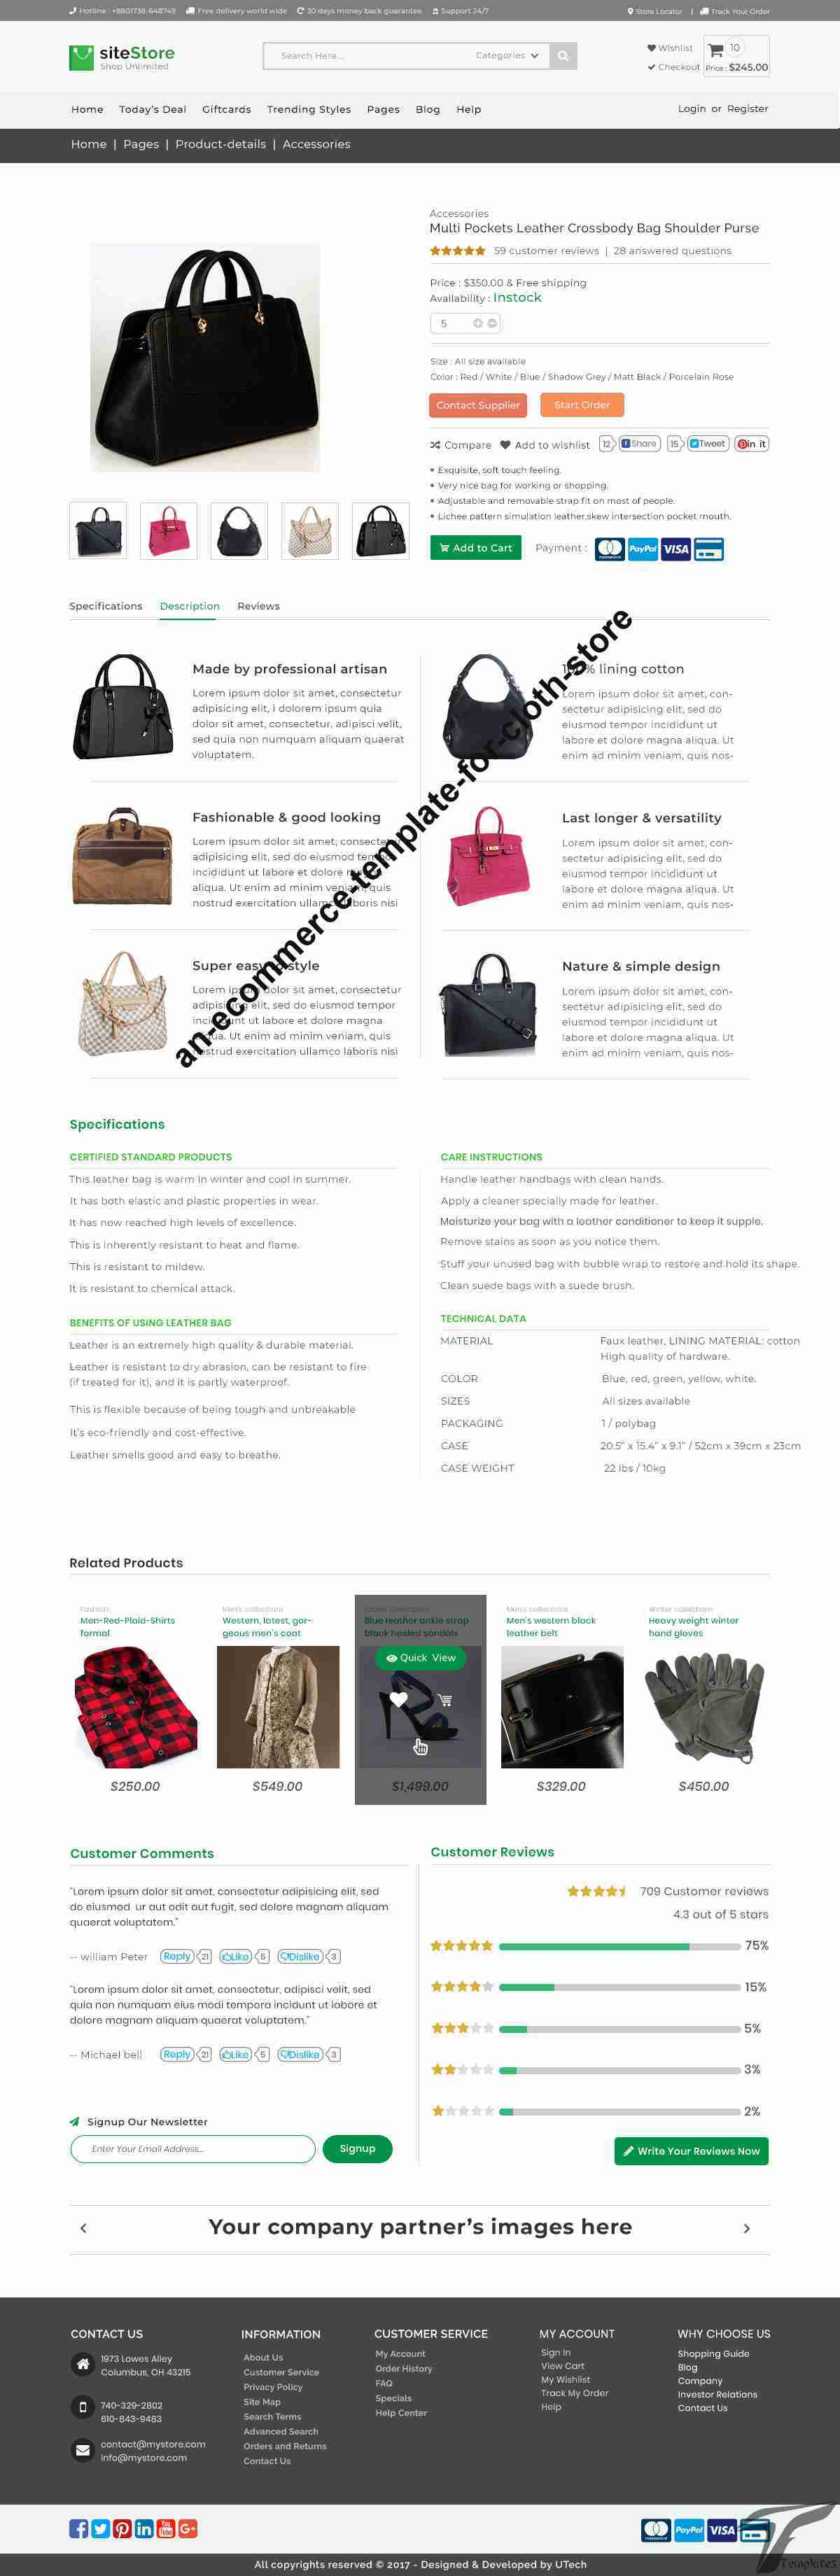 https://images.besthemes.com/images/h1_an-ecommerce-template-for-cloth-store6-_-244967348/preview/06_product-details-2.jpg